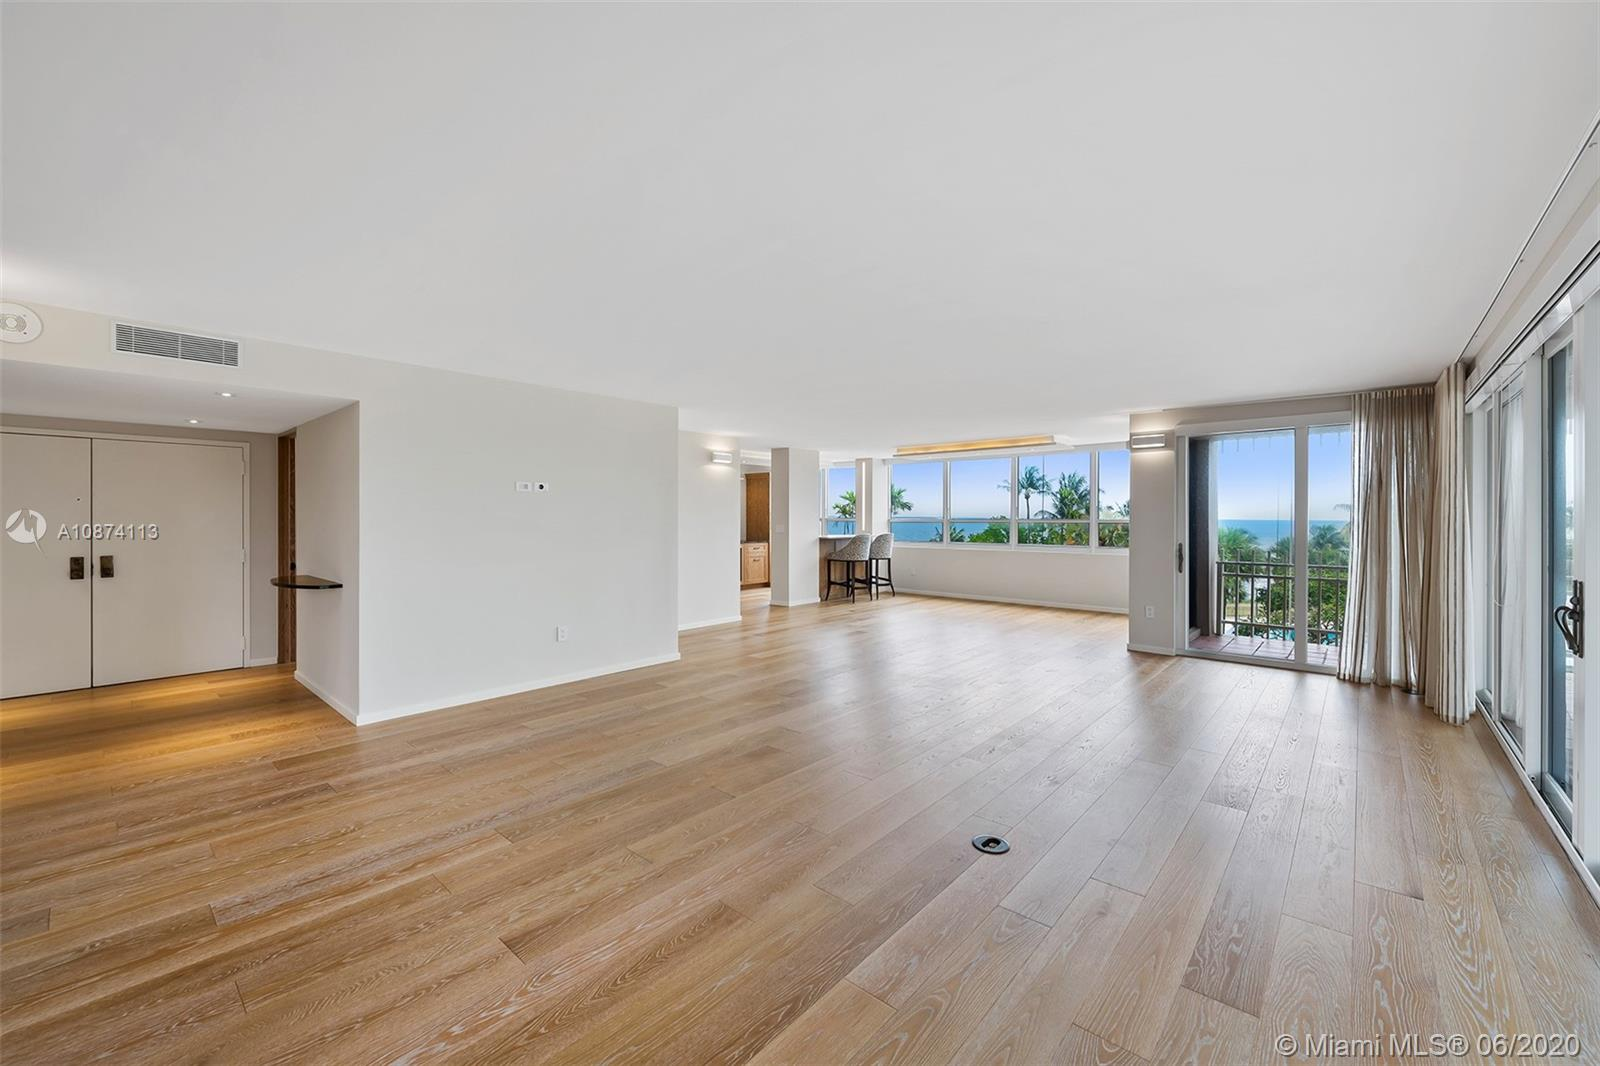 2 Grove Isle Dr # B302, Miami, Florida 33133, 3 Bedrooms Bedrooms, ,2 BathroomsBathrooms,Residential,For Sale,2 Grove Isle Dr # B302,A10874113